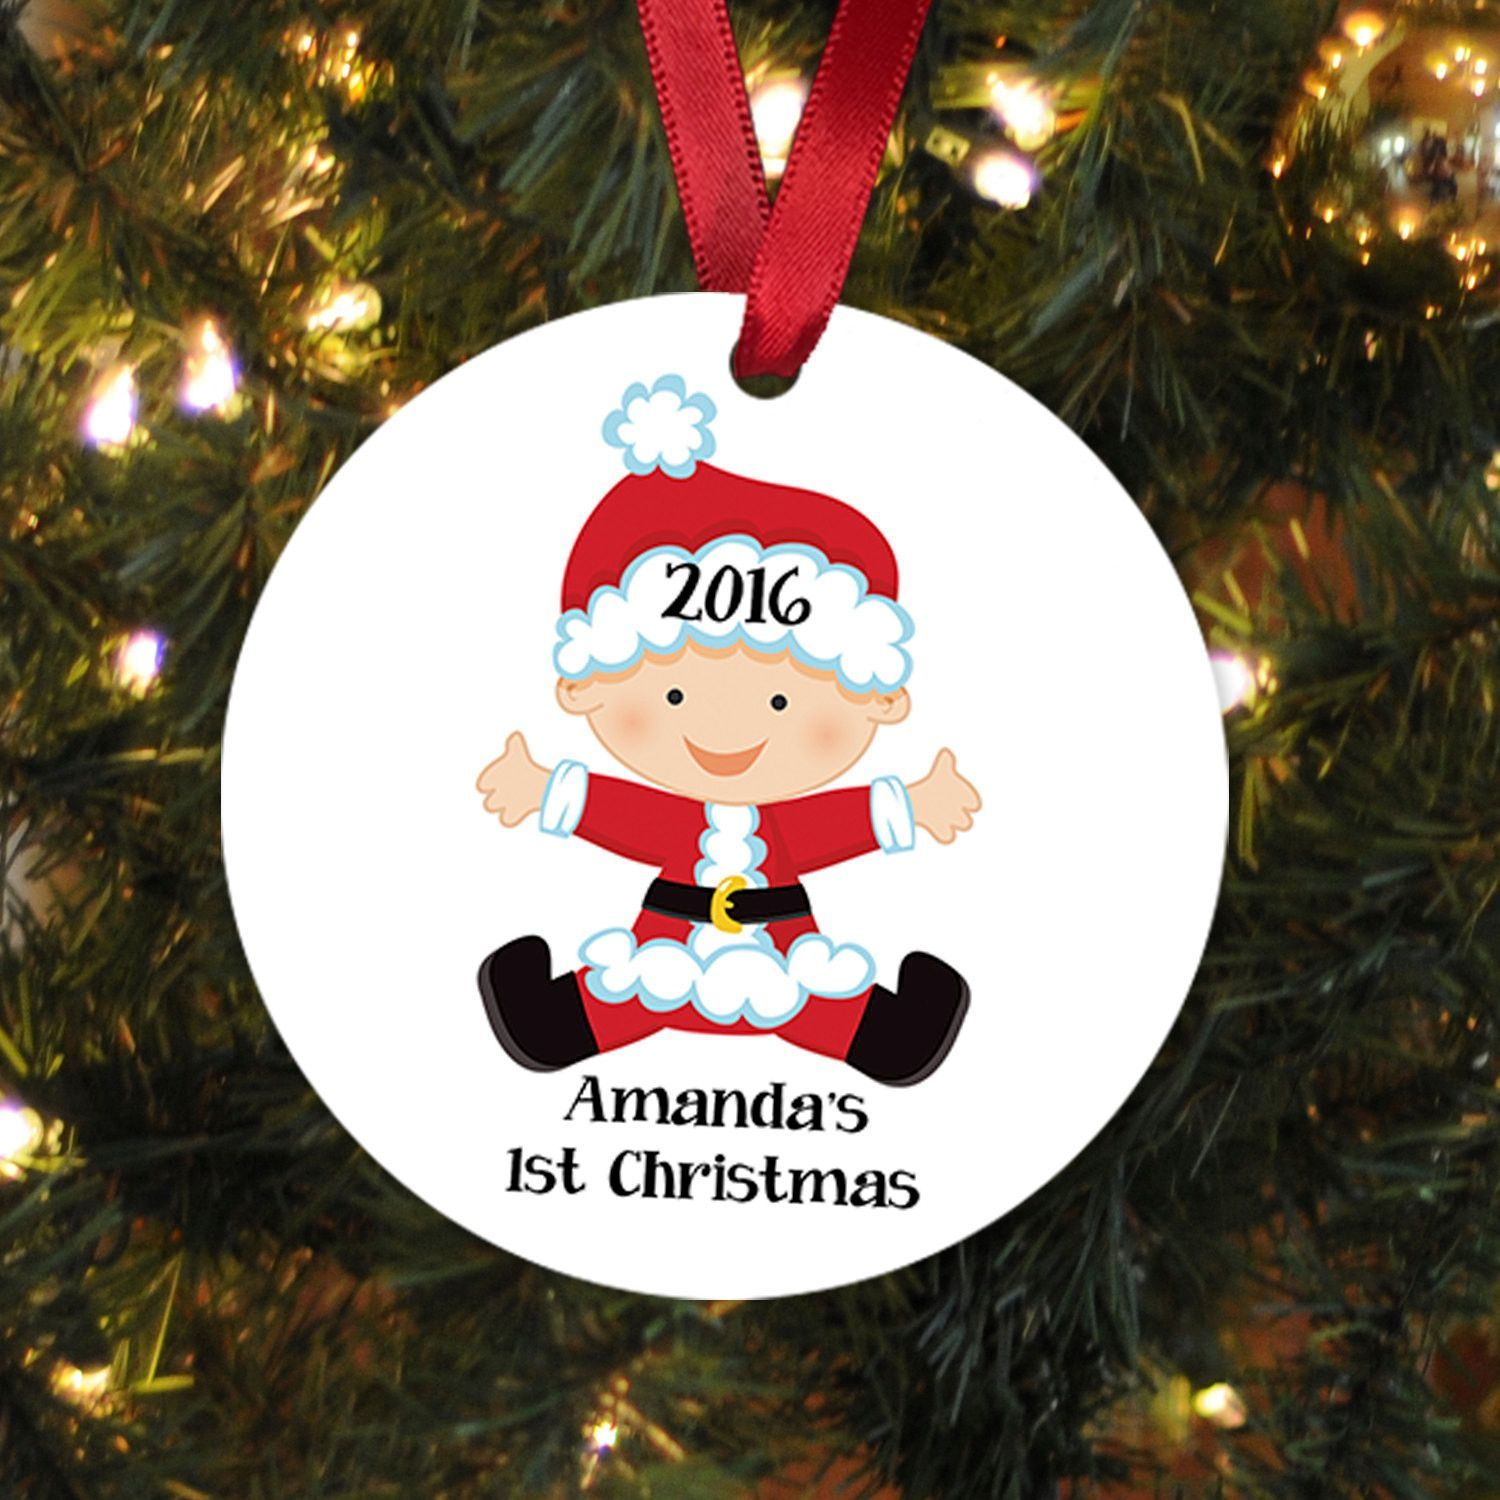 New baby ornaments - Baby S First Christmas Ornament Personalized Christmas Ornament Baby Christmas Ornament New Baby Gift